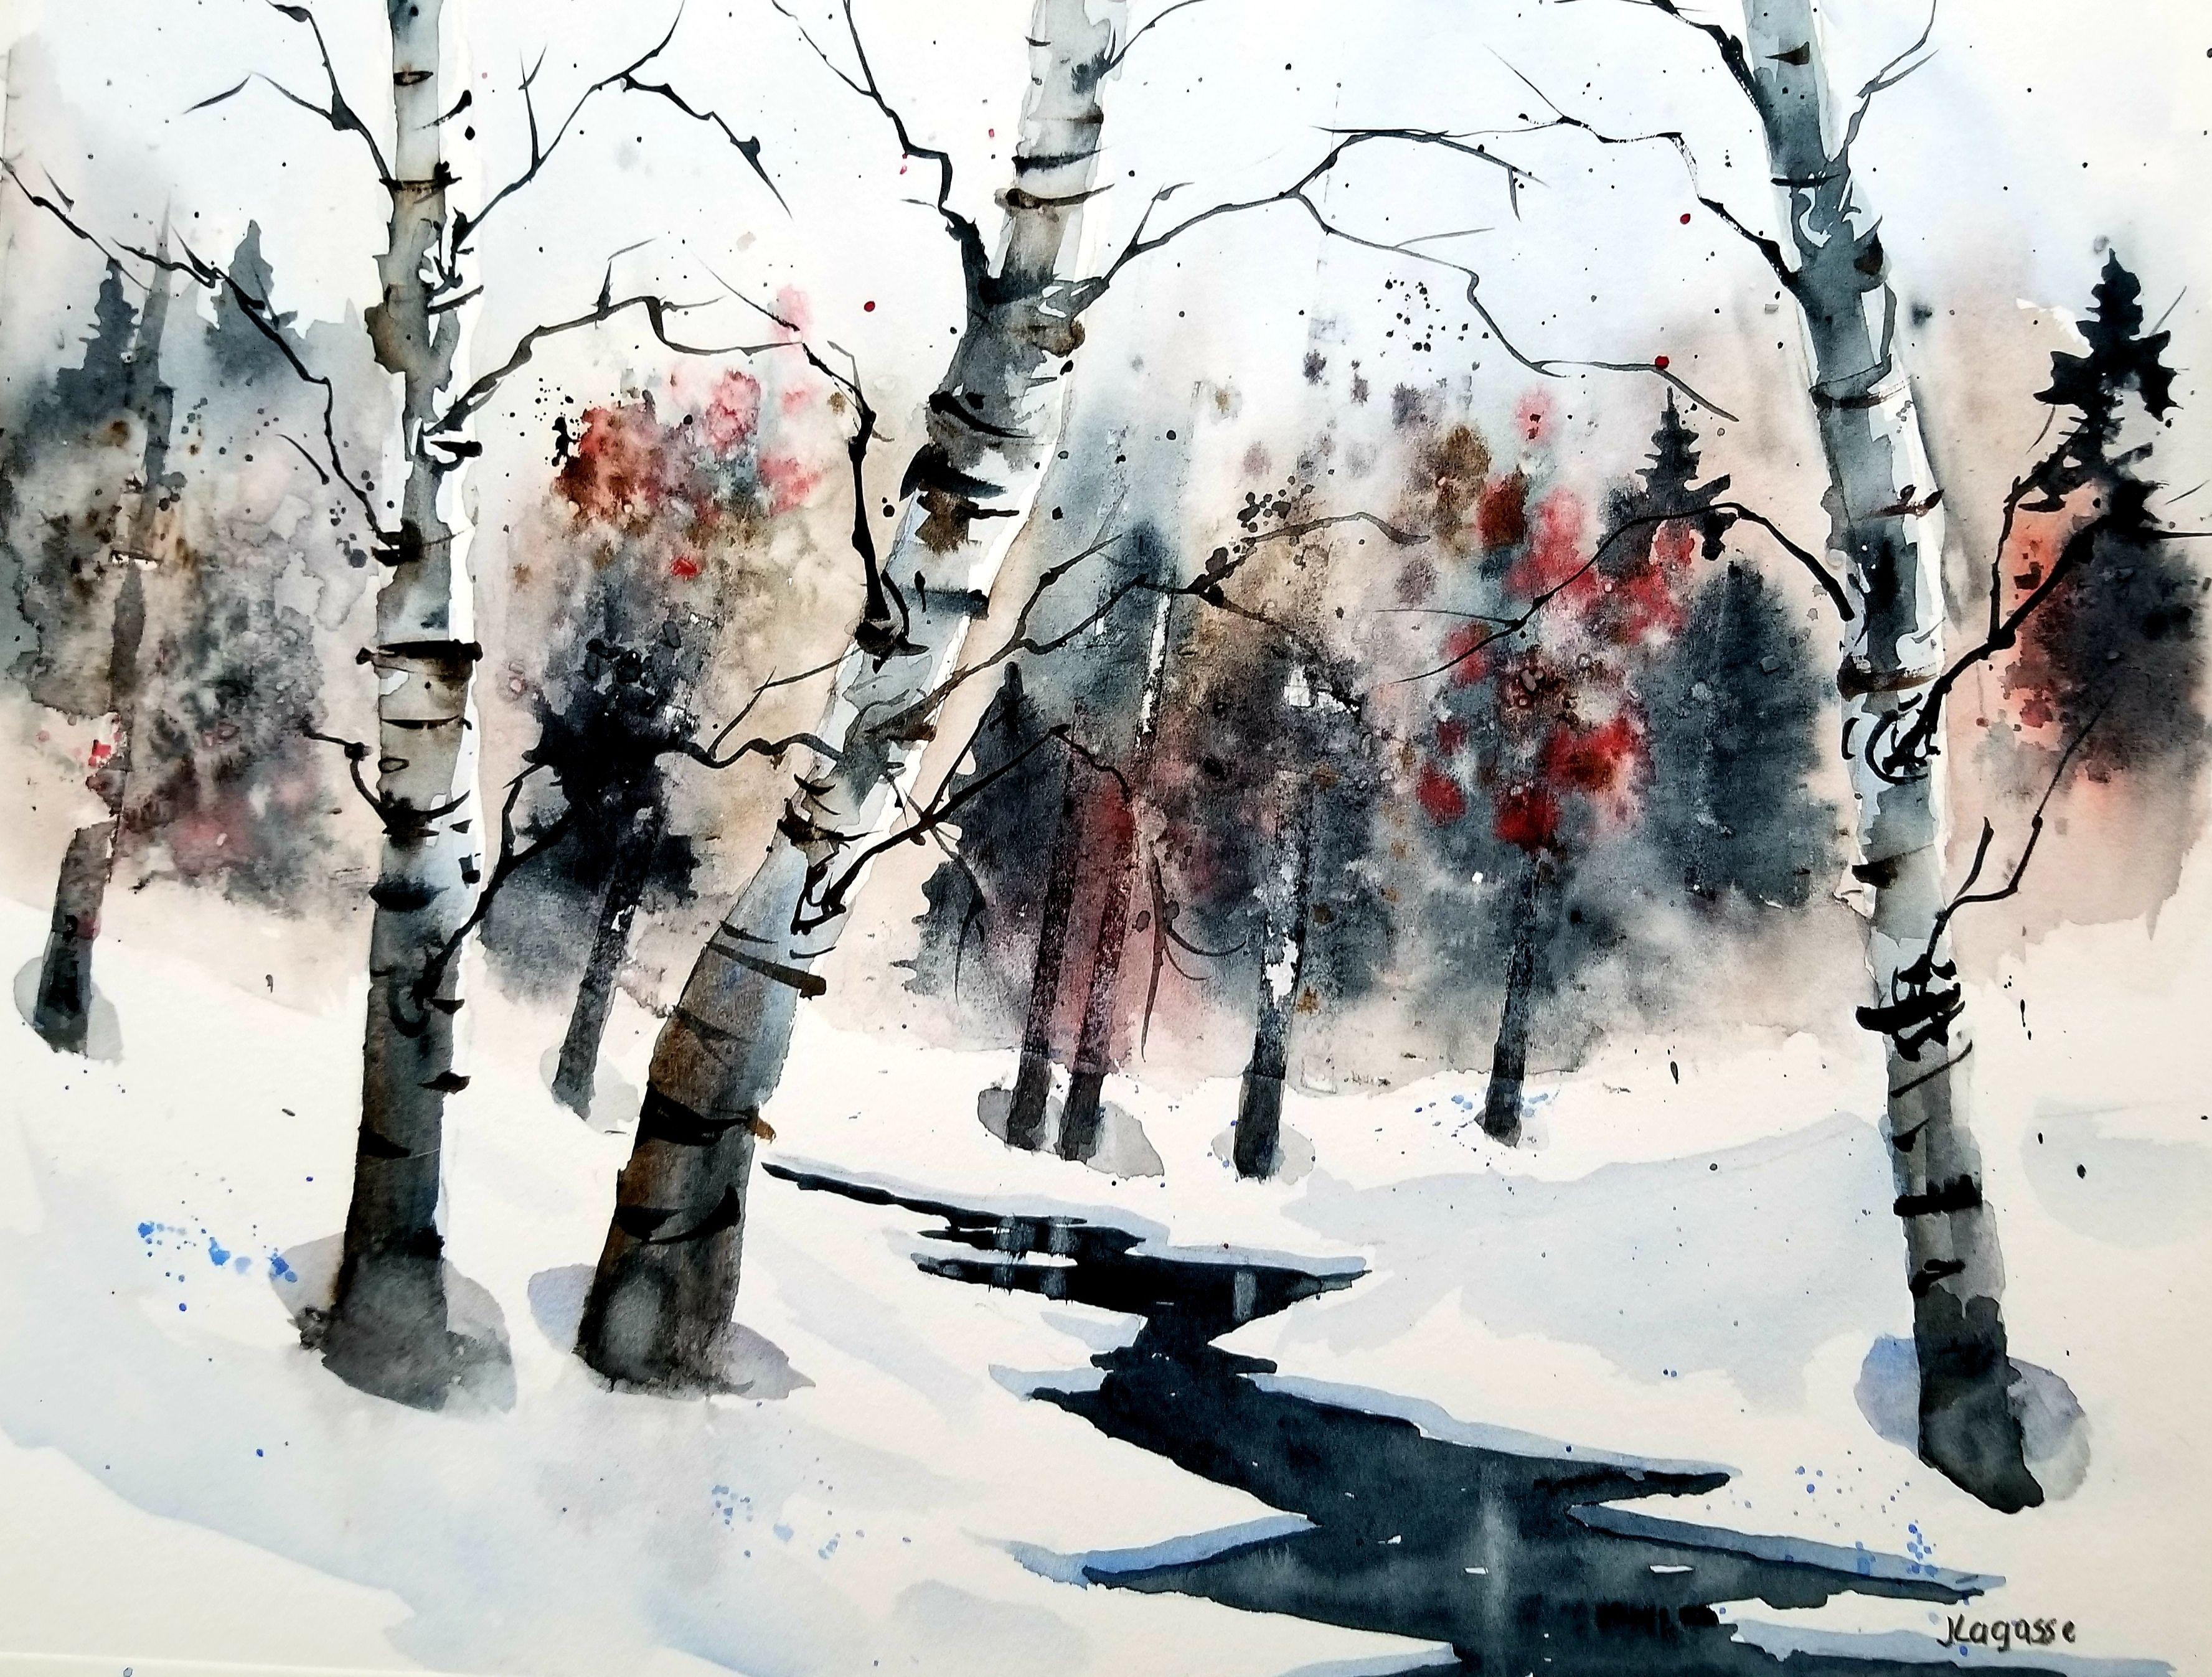 Frozen, Painting, Watercolor on Watercolor Paper